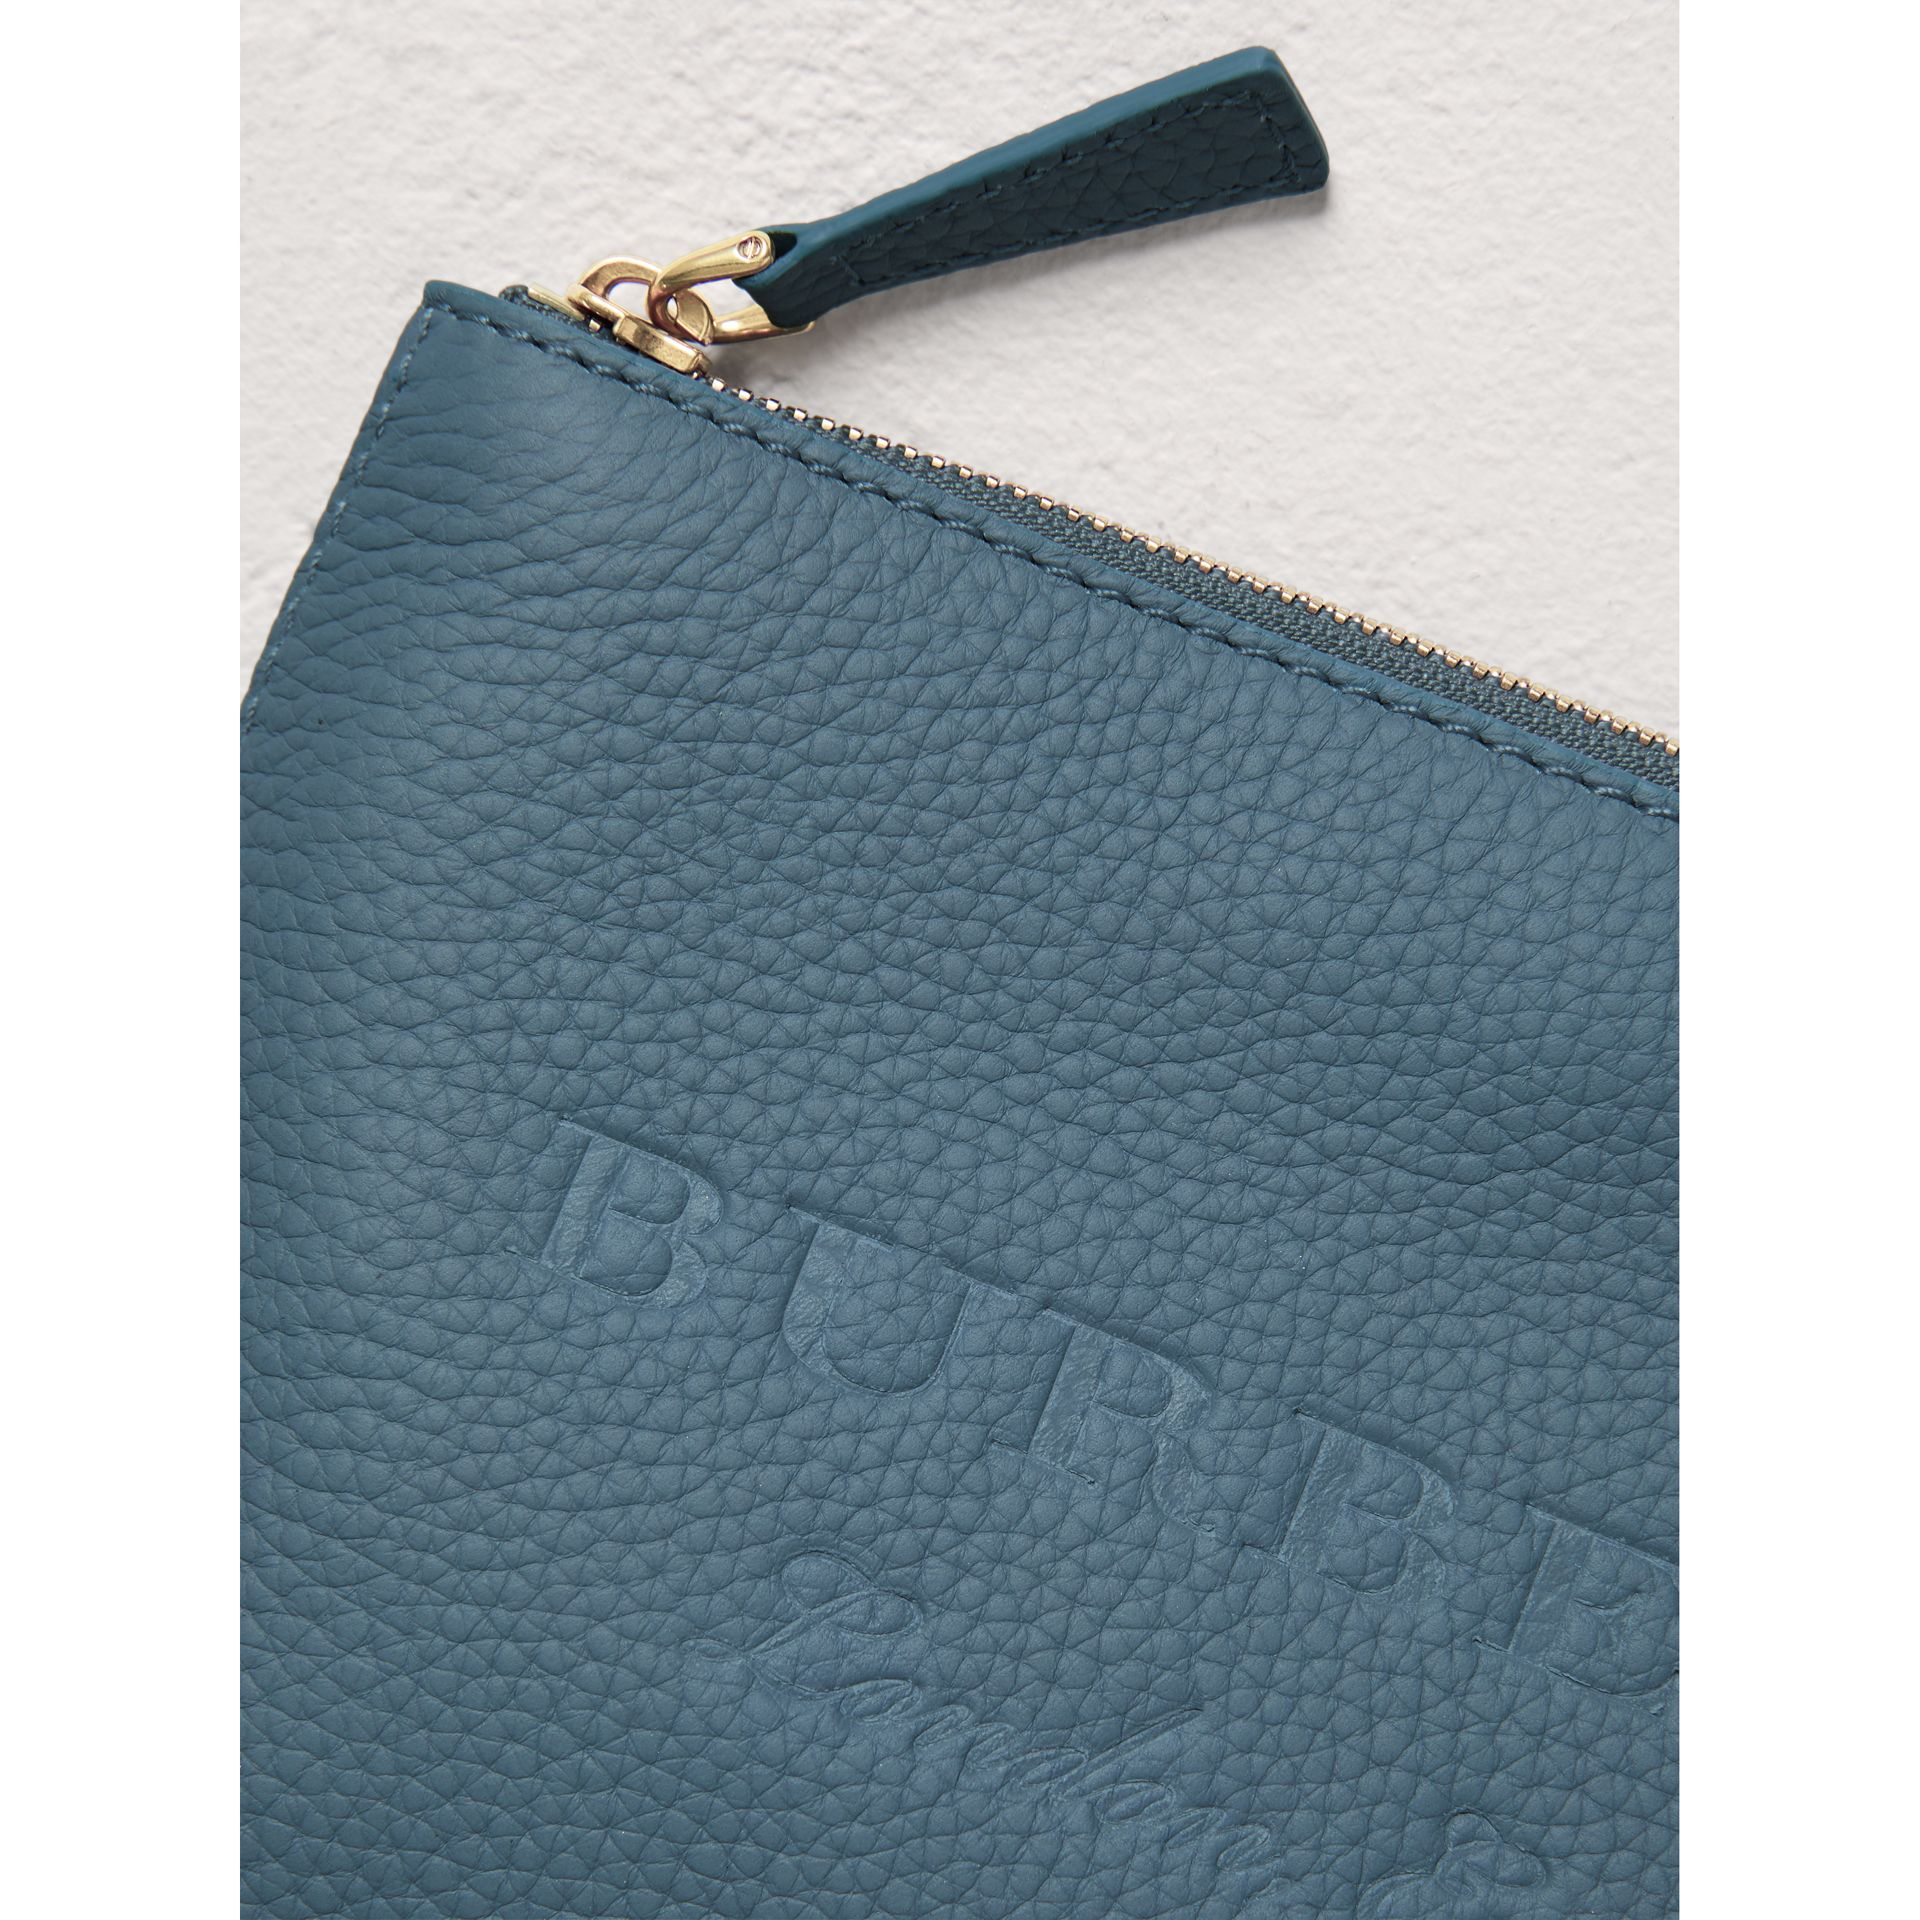 Medium Embossed Leather Zip Pouch in Dusty Teal Blue | Burberry Canada - gallery image 1